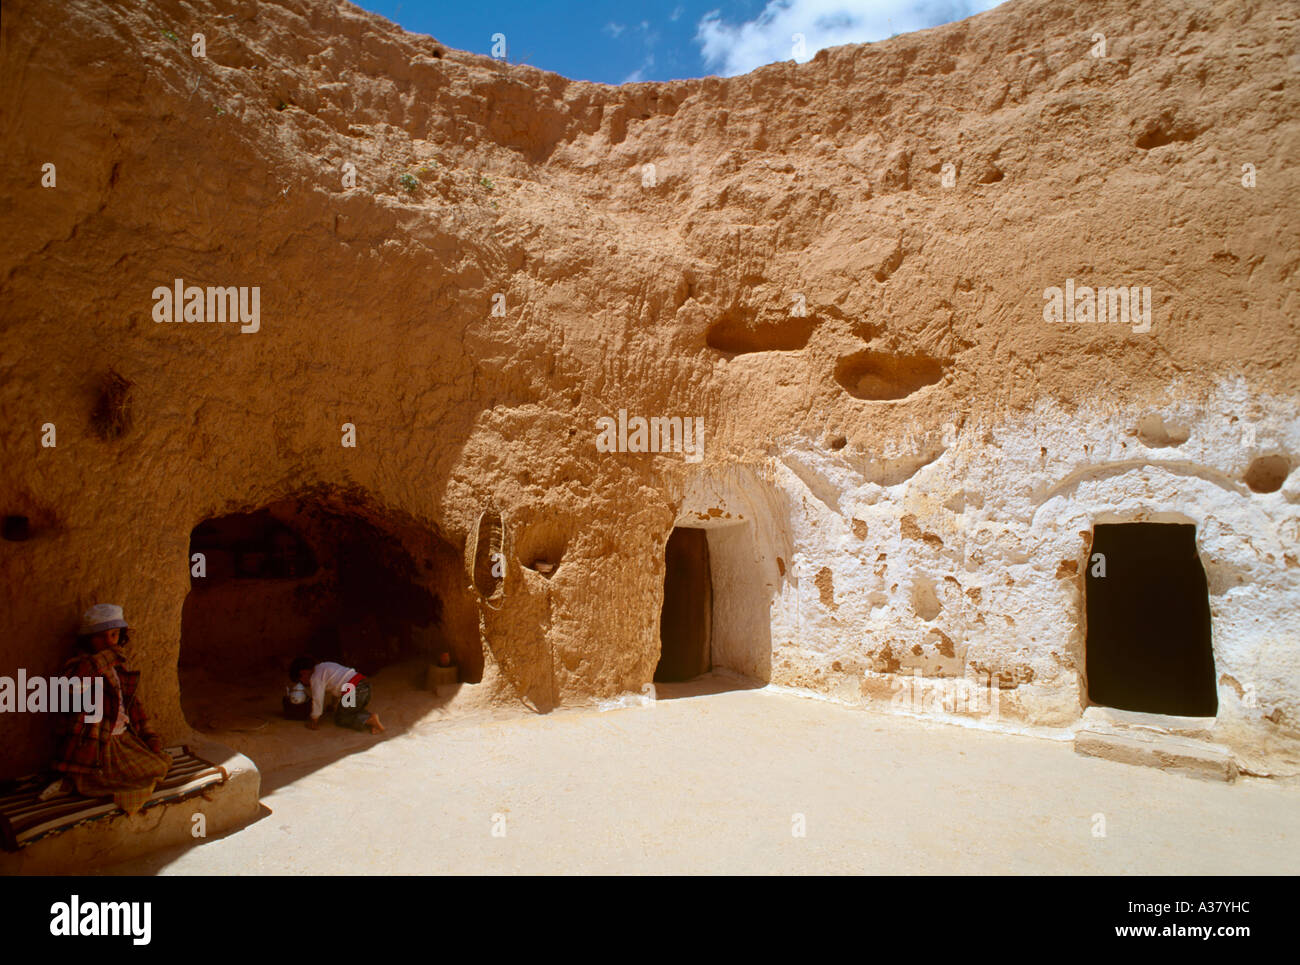 Typical underground cave house at Matmata location